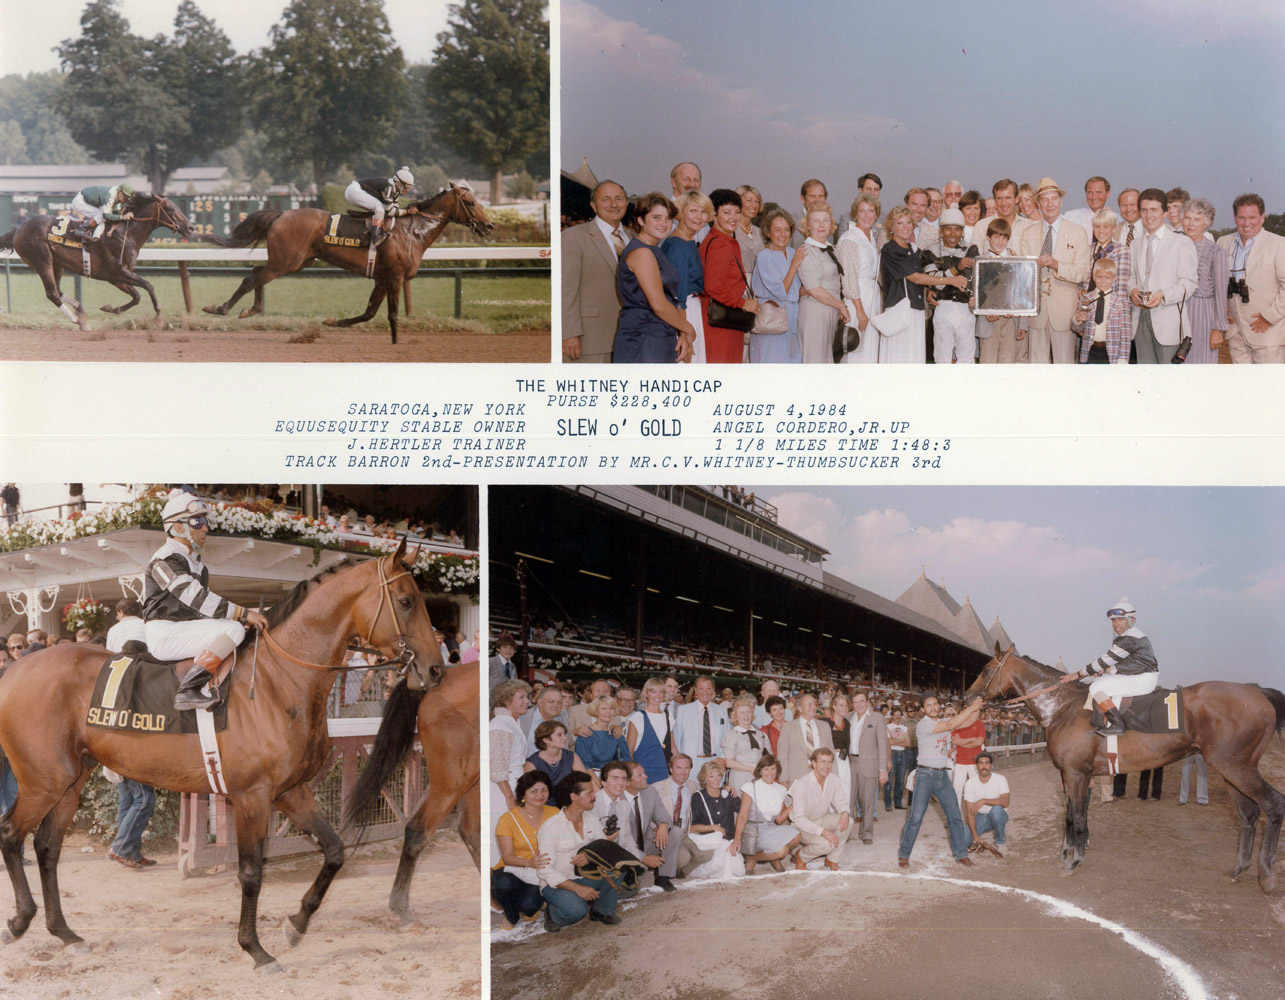 Win composite photograph for the 1984 Whitney Handicap at Saratoga, won by Slew o' Gold with Angel Cordero up (NYRA/Museum Collection)